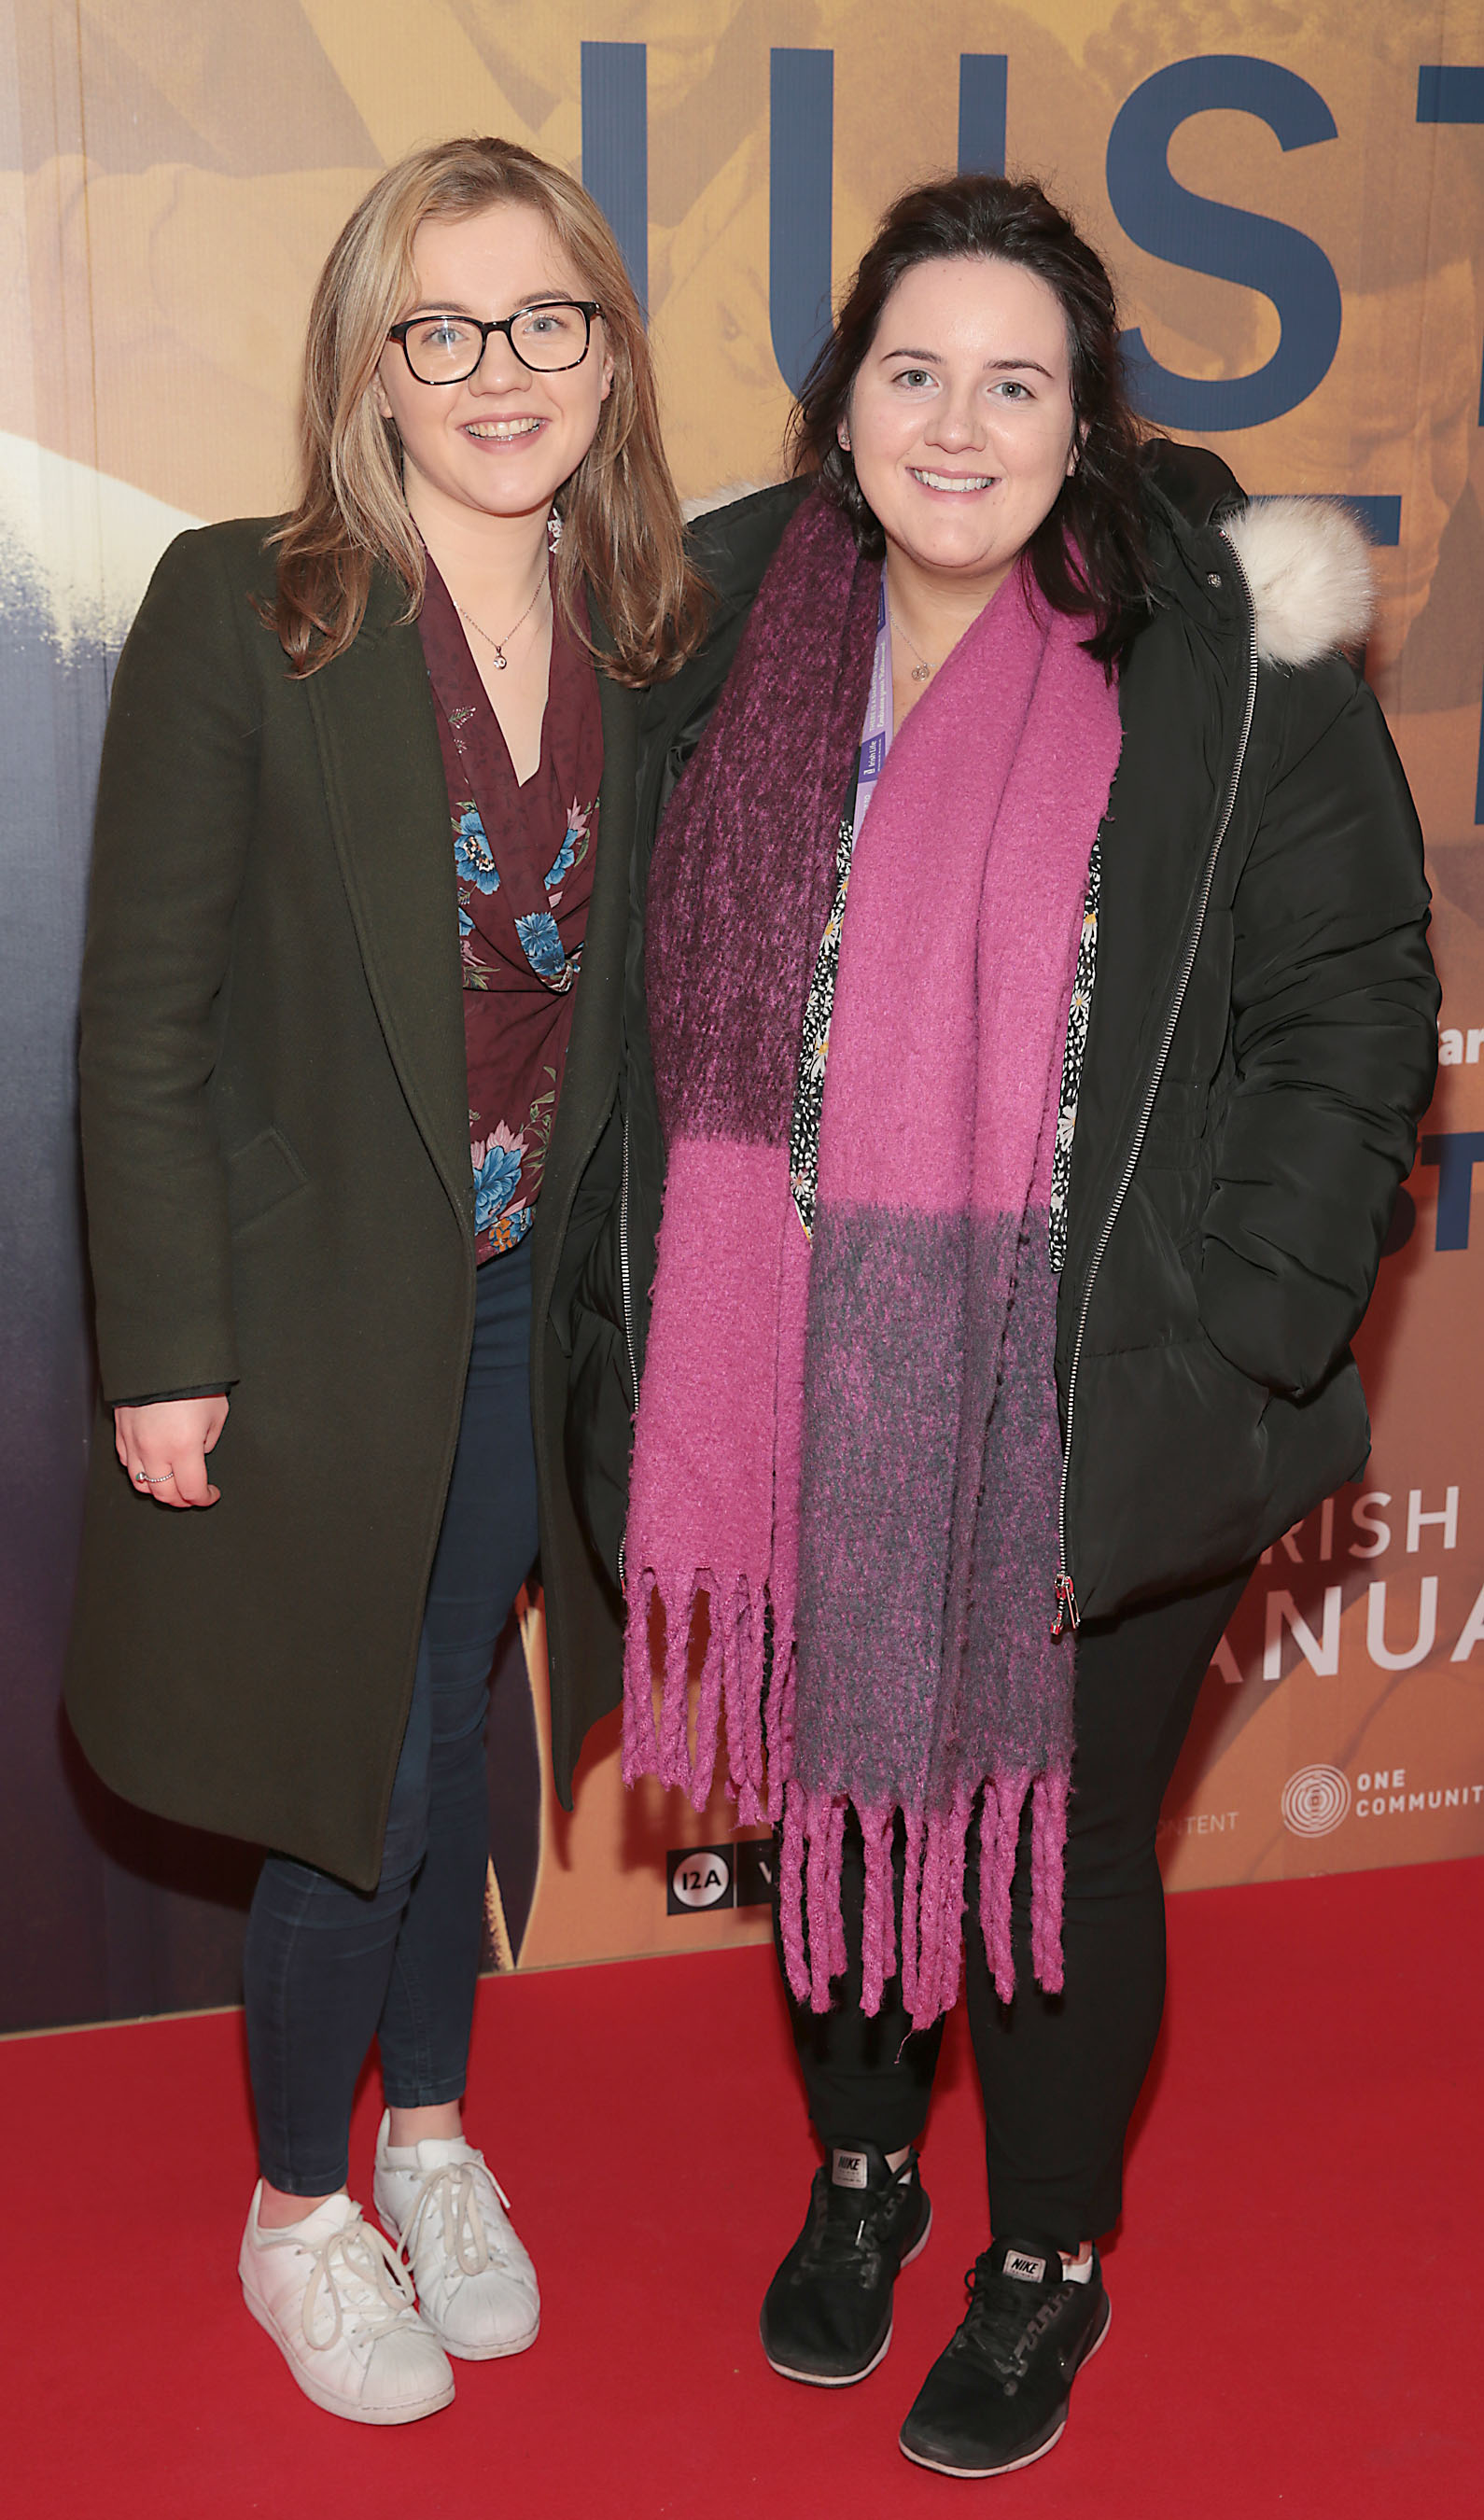 Eimear Hegarty and Orla McMahon at the special preview screening of Just Mercy at the Lighthouse Cinema, Dublin. Pic Brian McEvoy